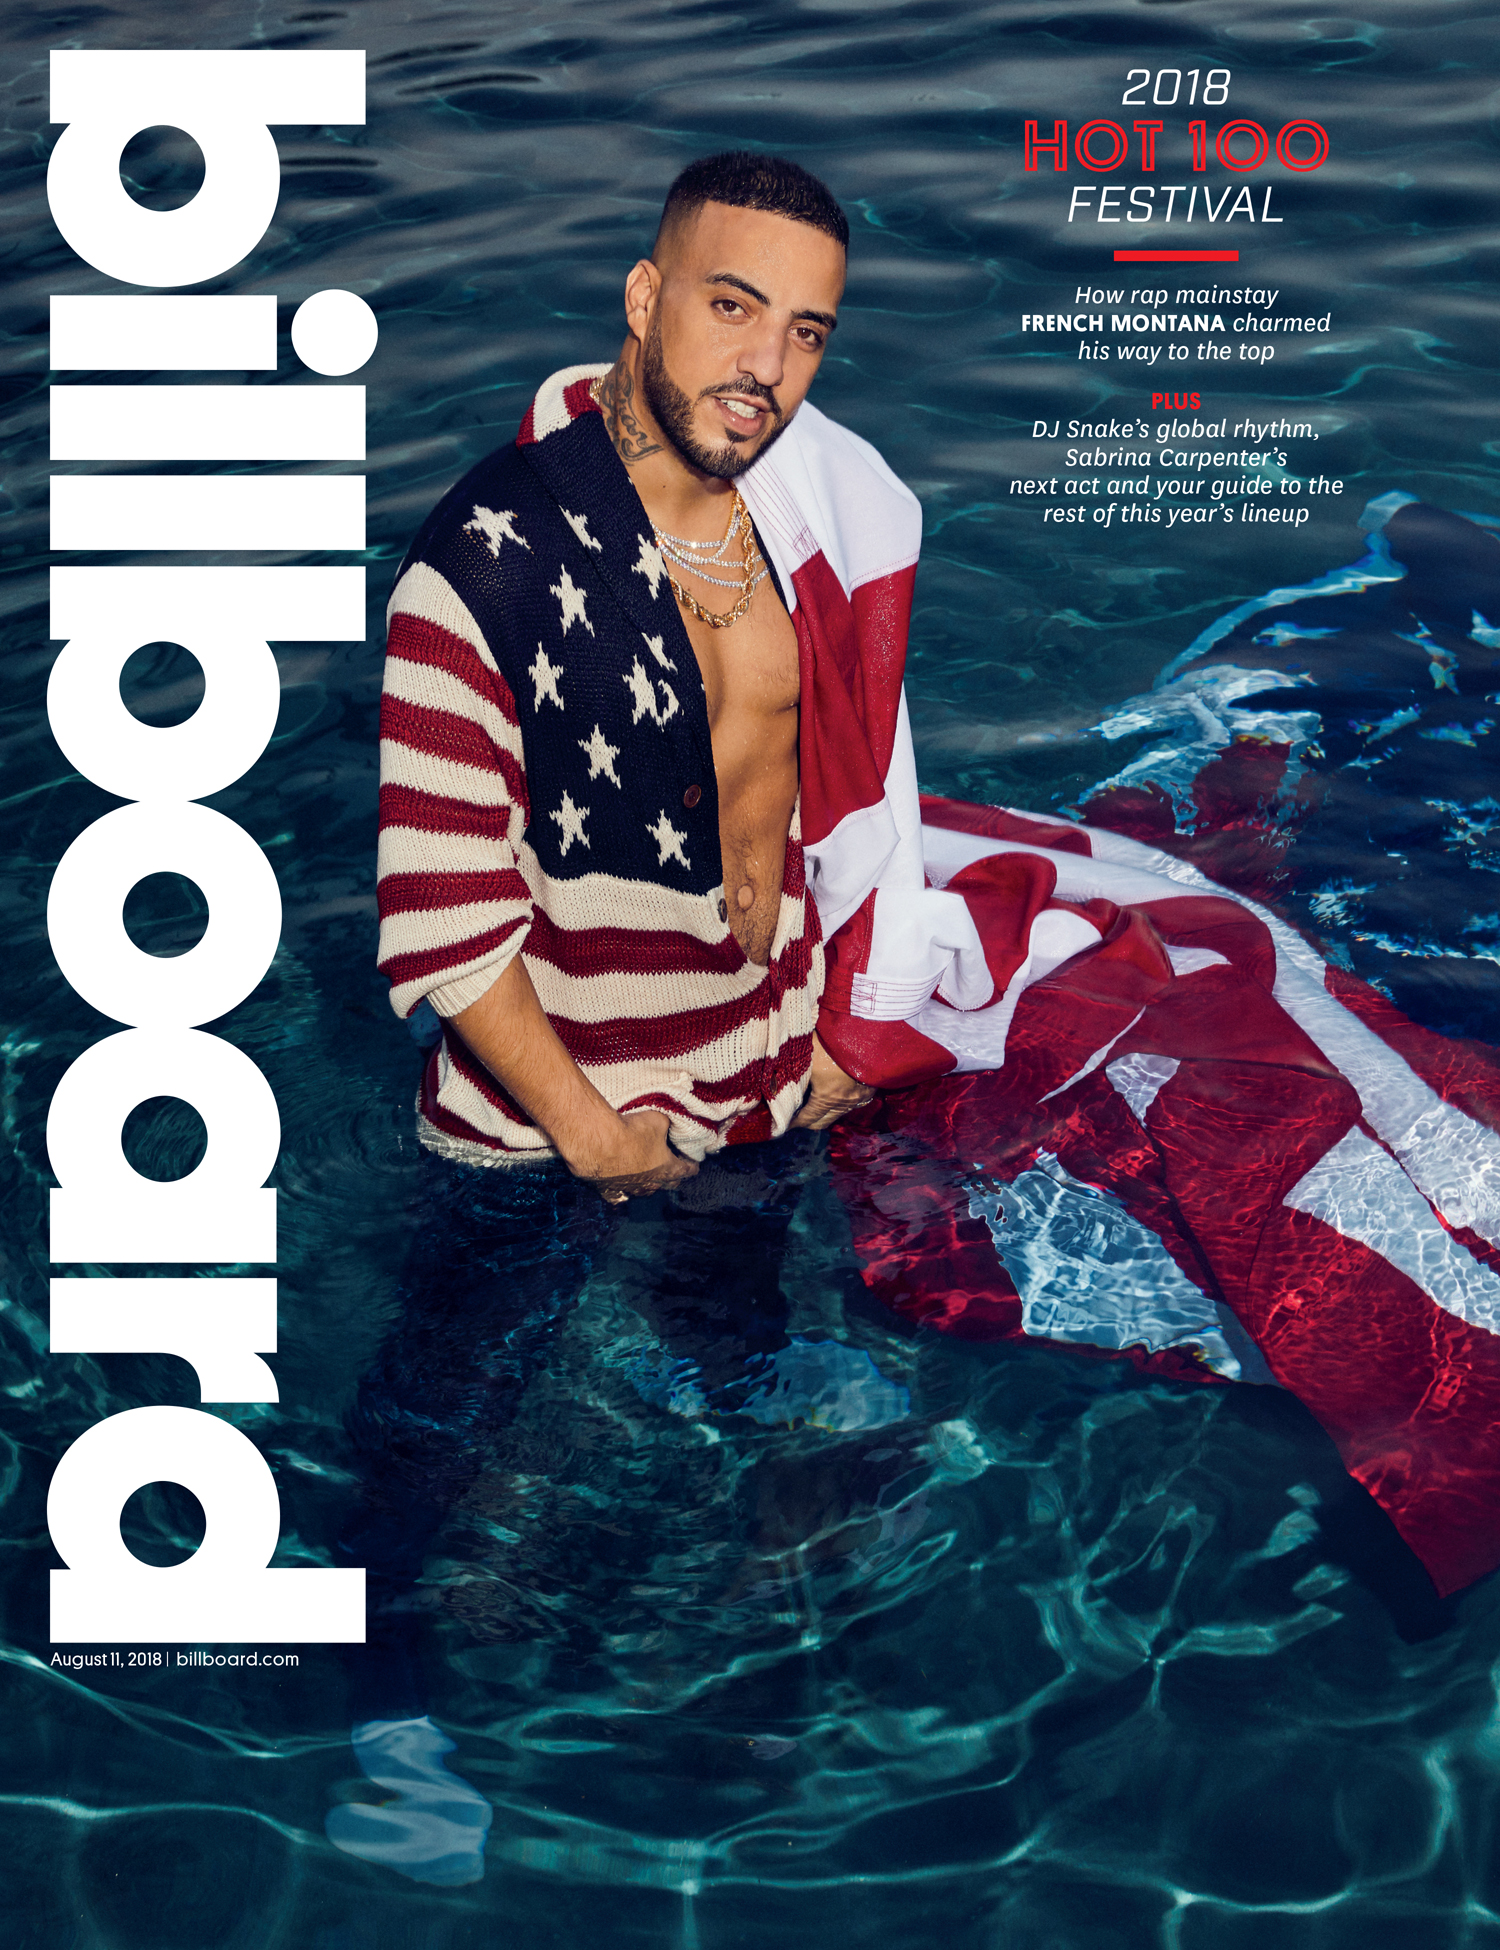 french-montana-ucdm-cob-bb19-2018-nkn-billboard-8fcju-1500.jpg